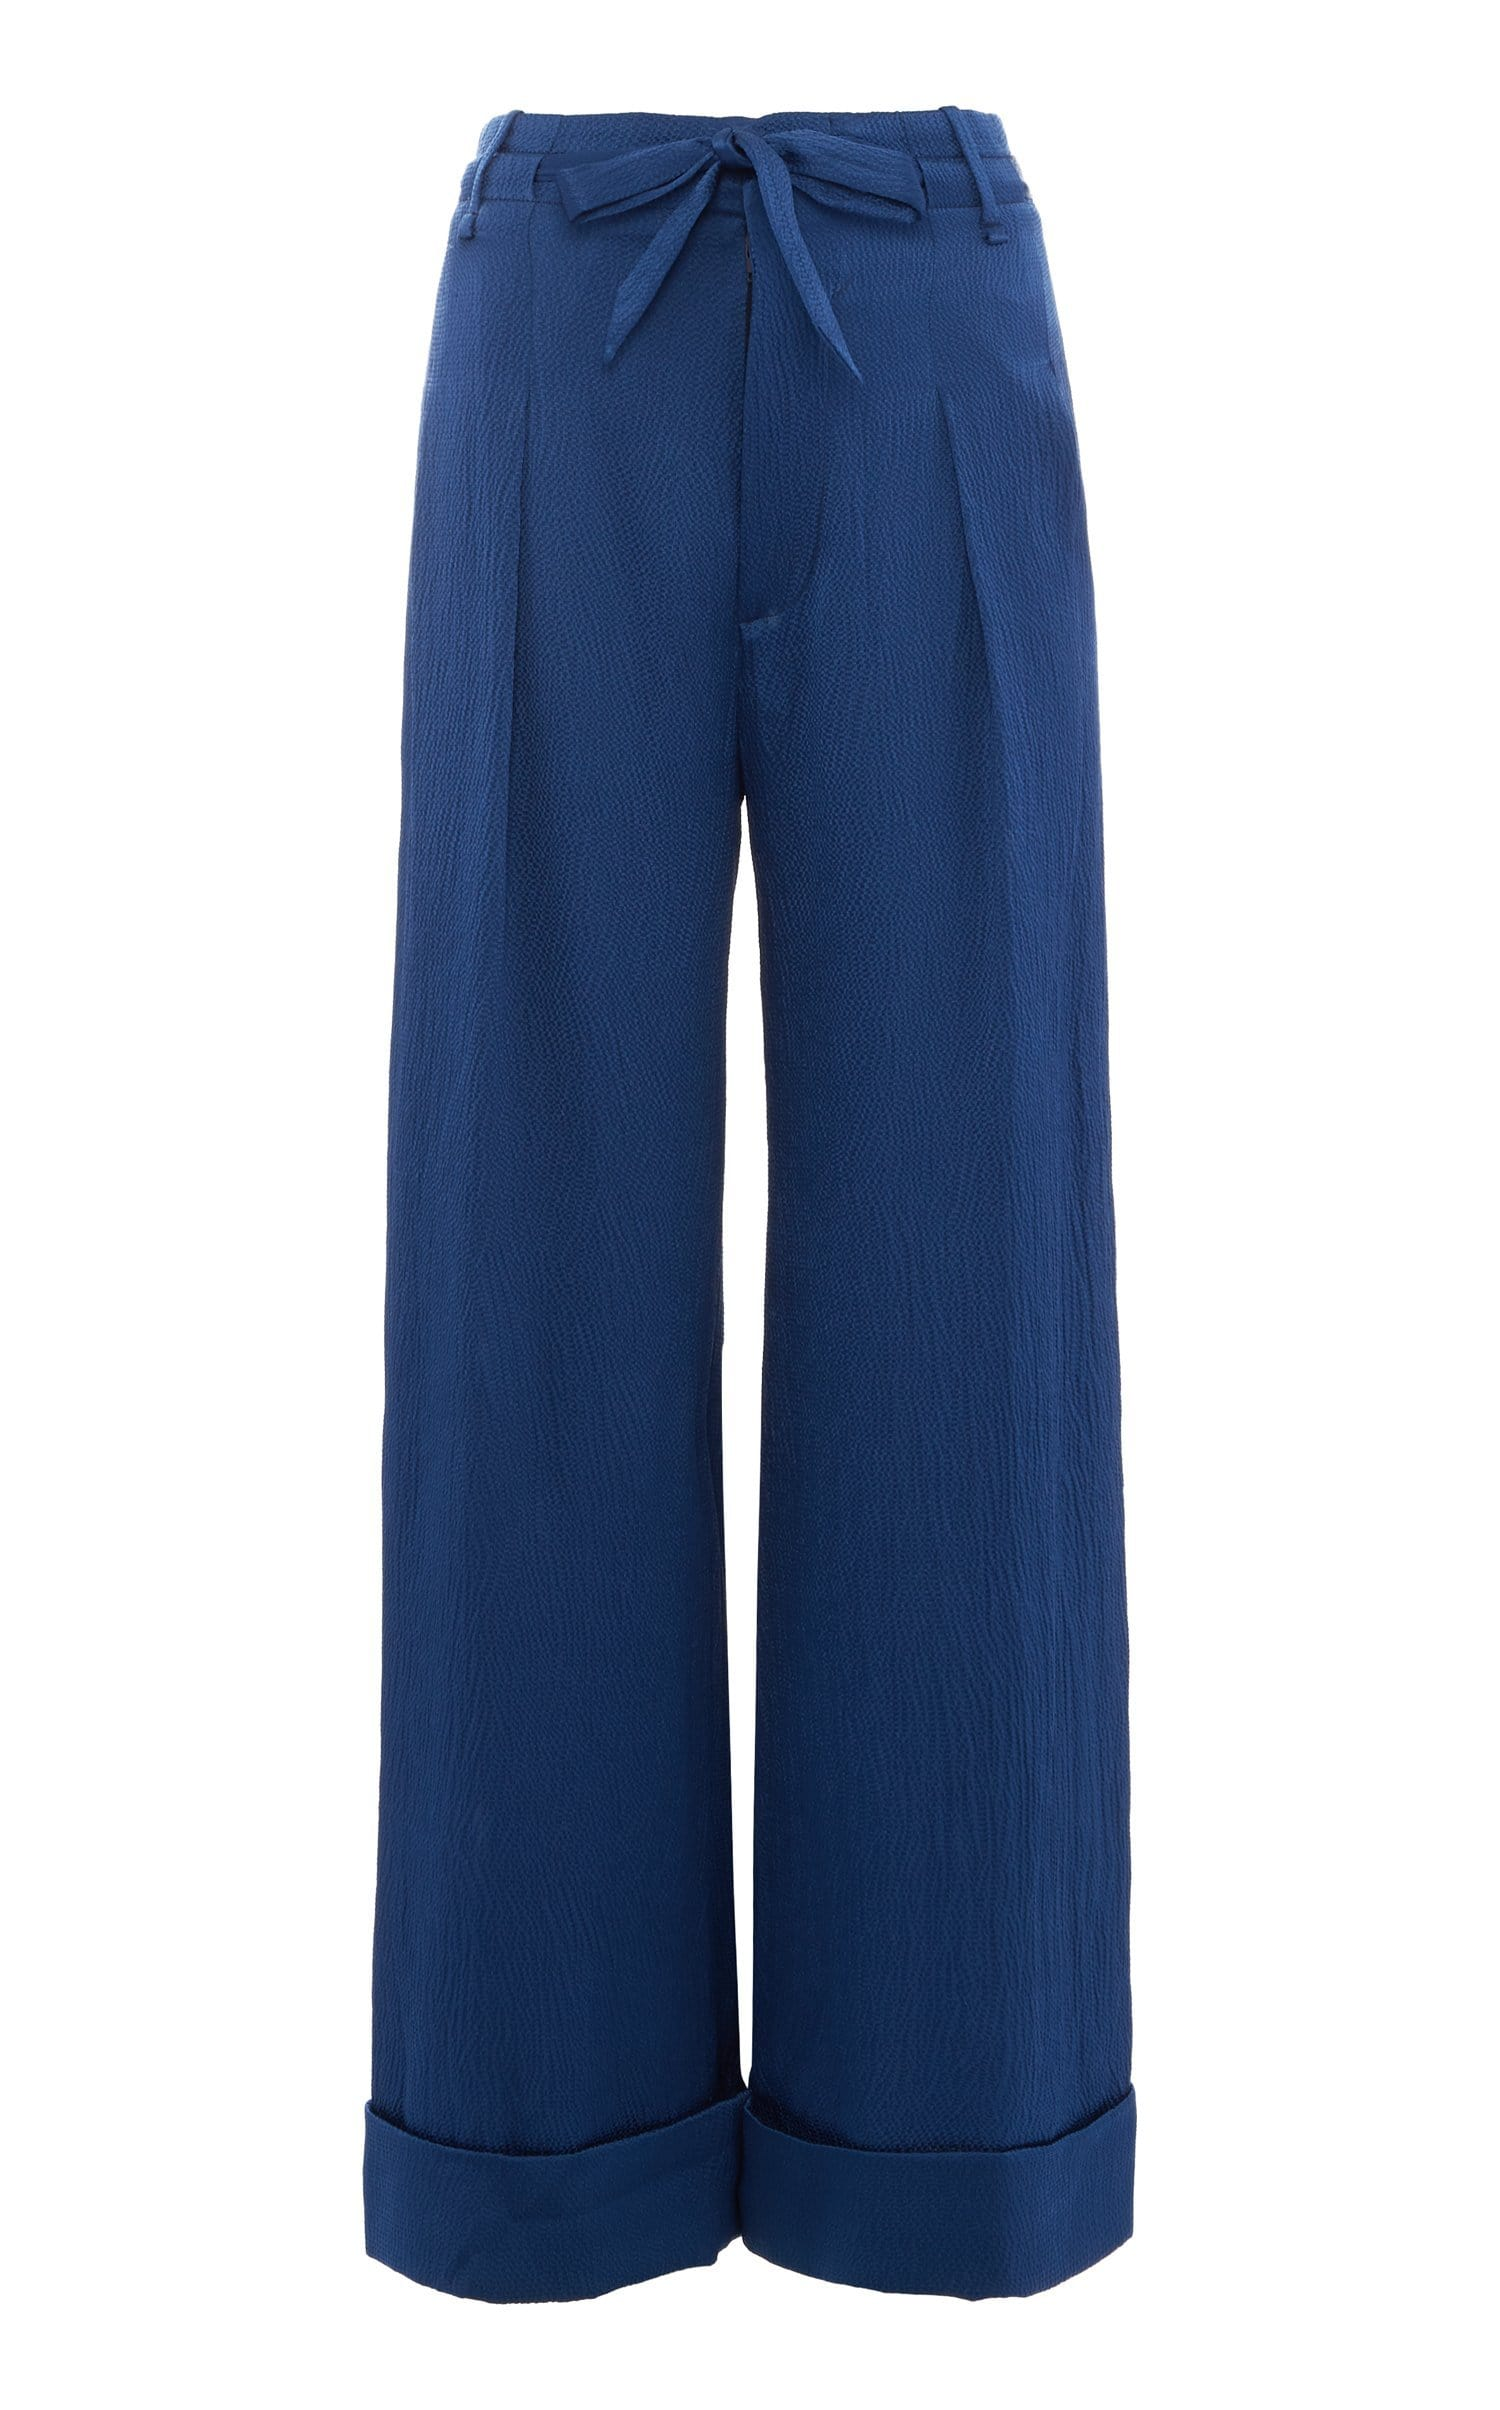 Perkins Trouser In Ultramarine from Roland Mouret